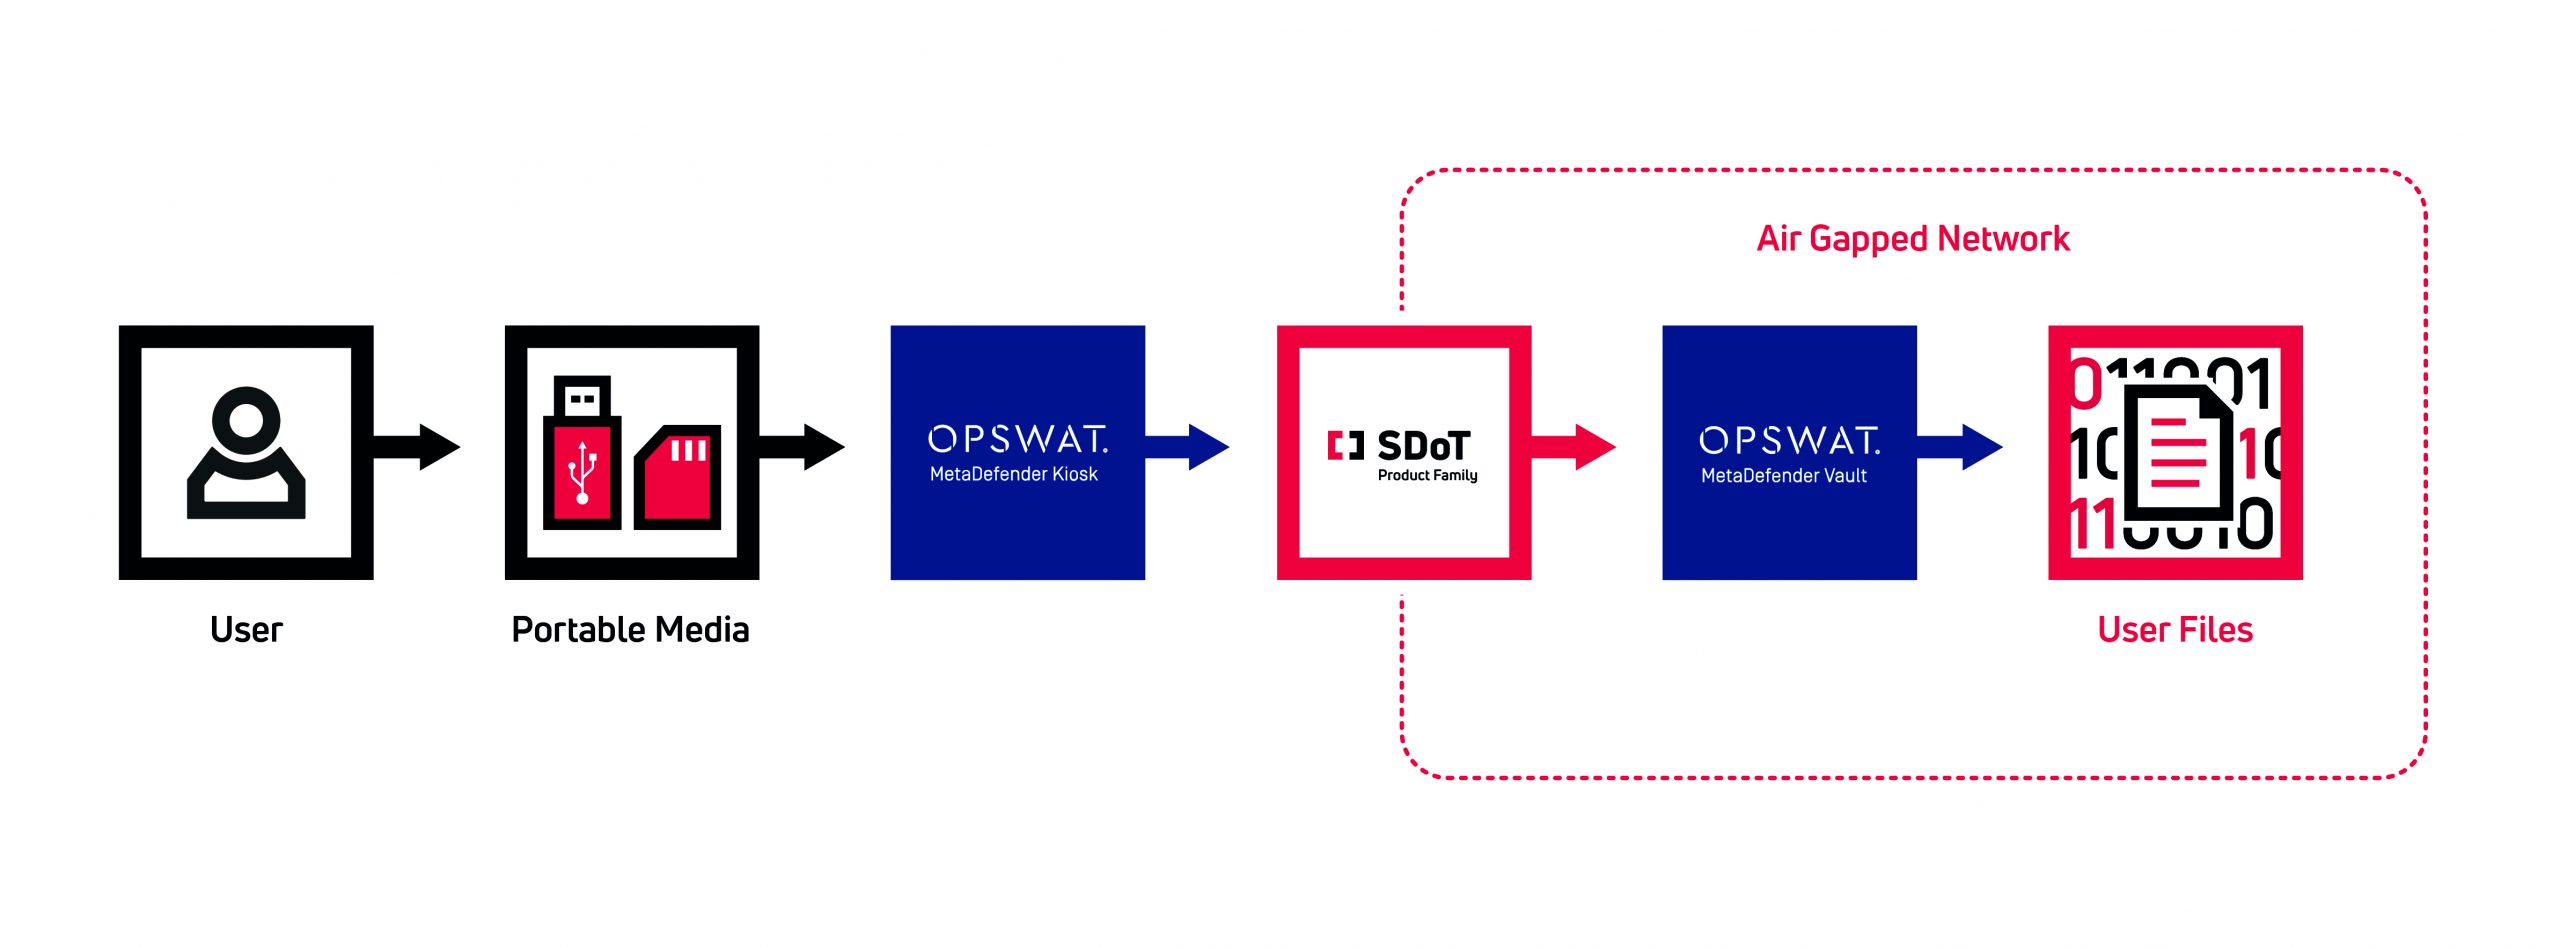 Use Case: SDoT product family in combination with OPSWAT MetaDefender